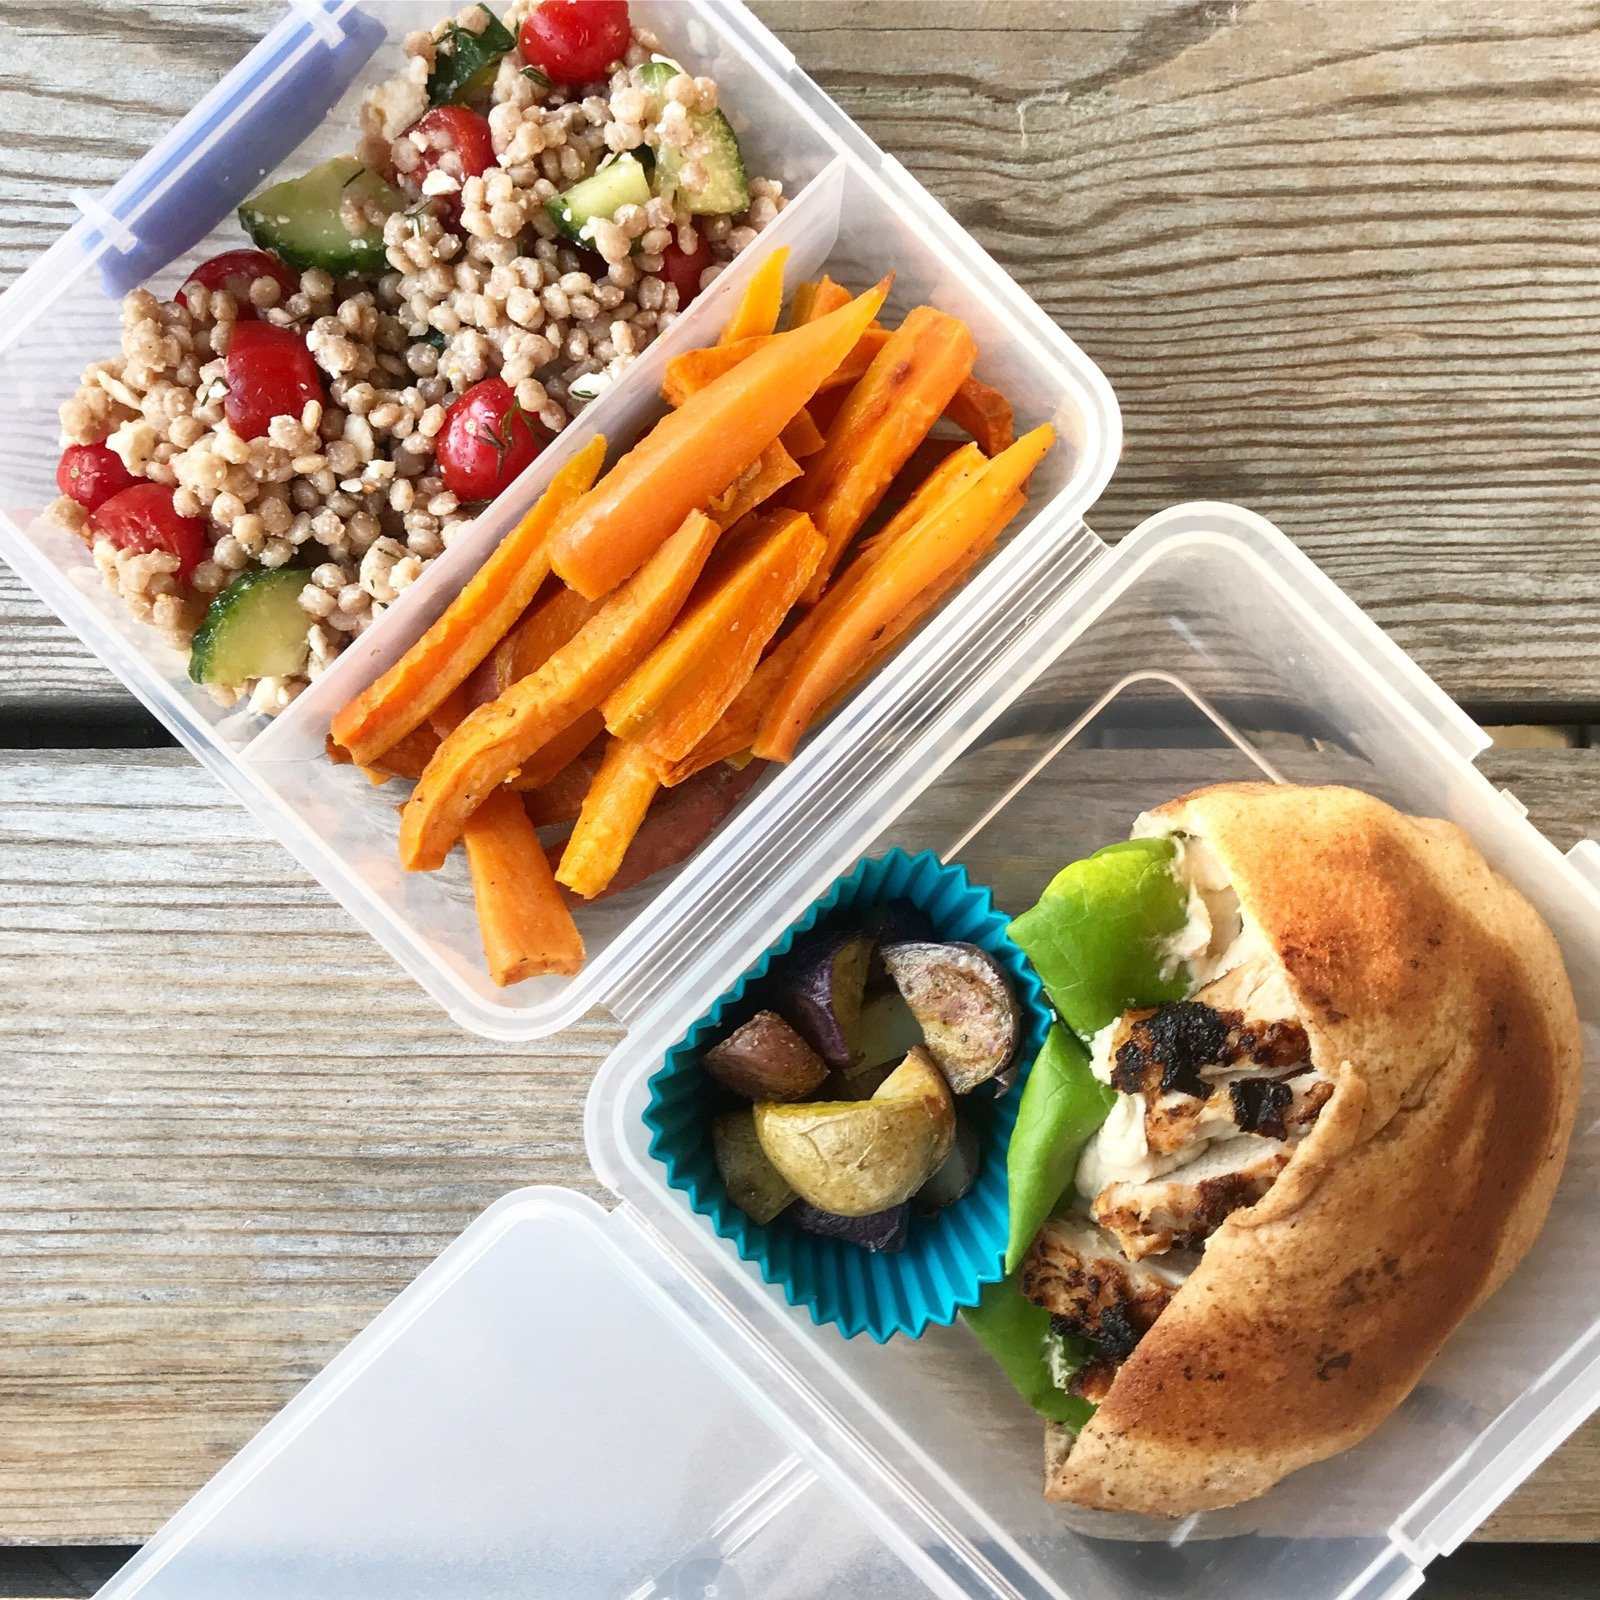 Yogurt Marinated Grilled Chicken with couscous salad in lunch box